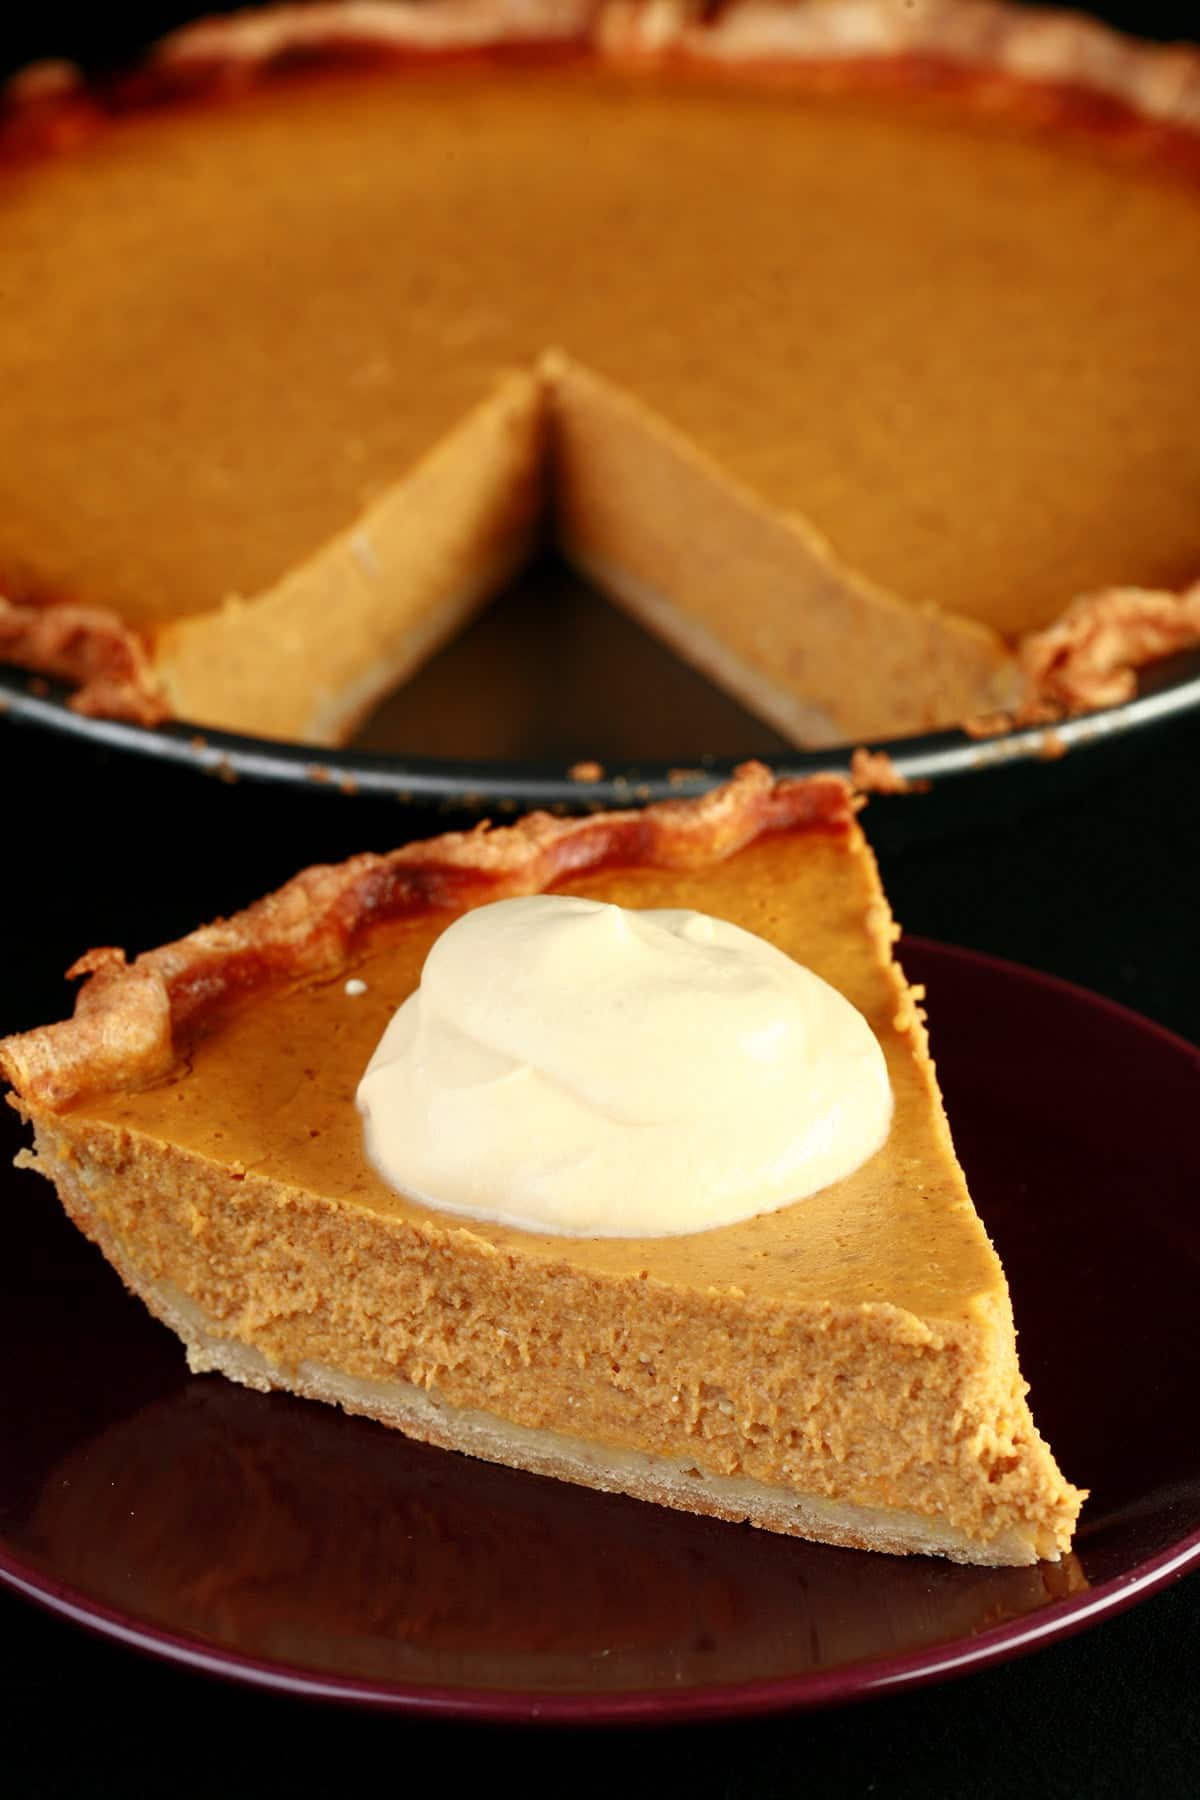 A slice of pumpkin pie with maple cream, in front of a whole pumpkin pie.